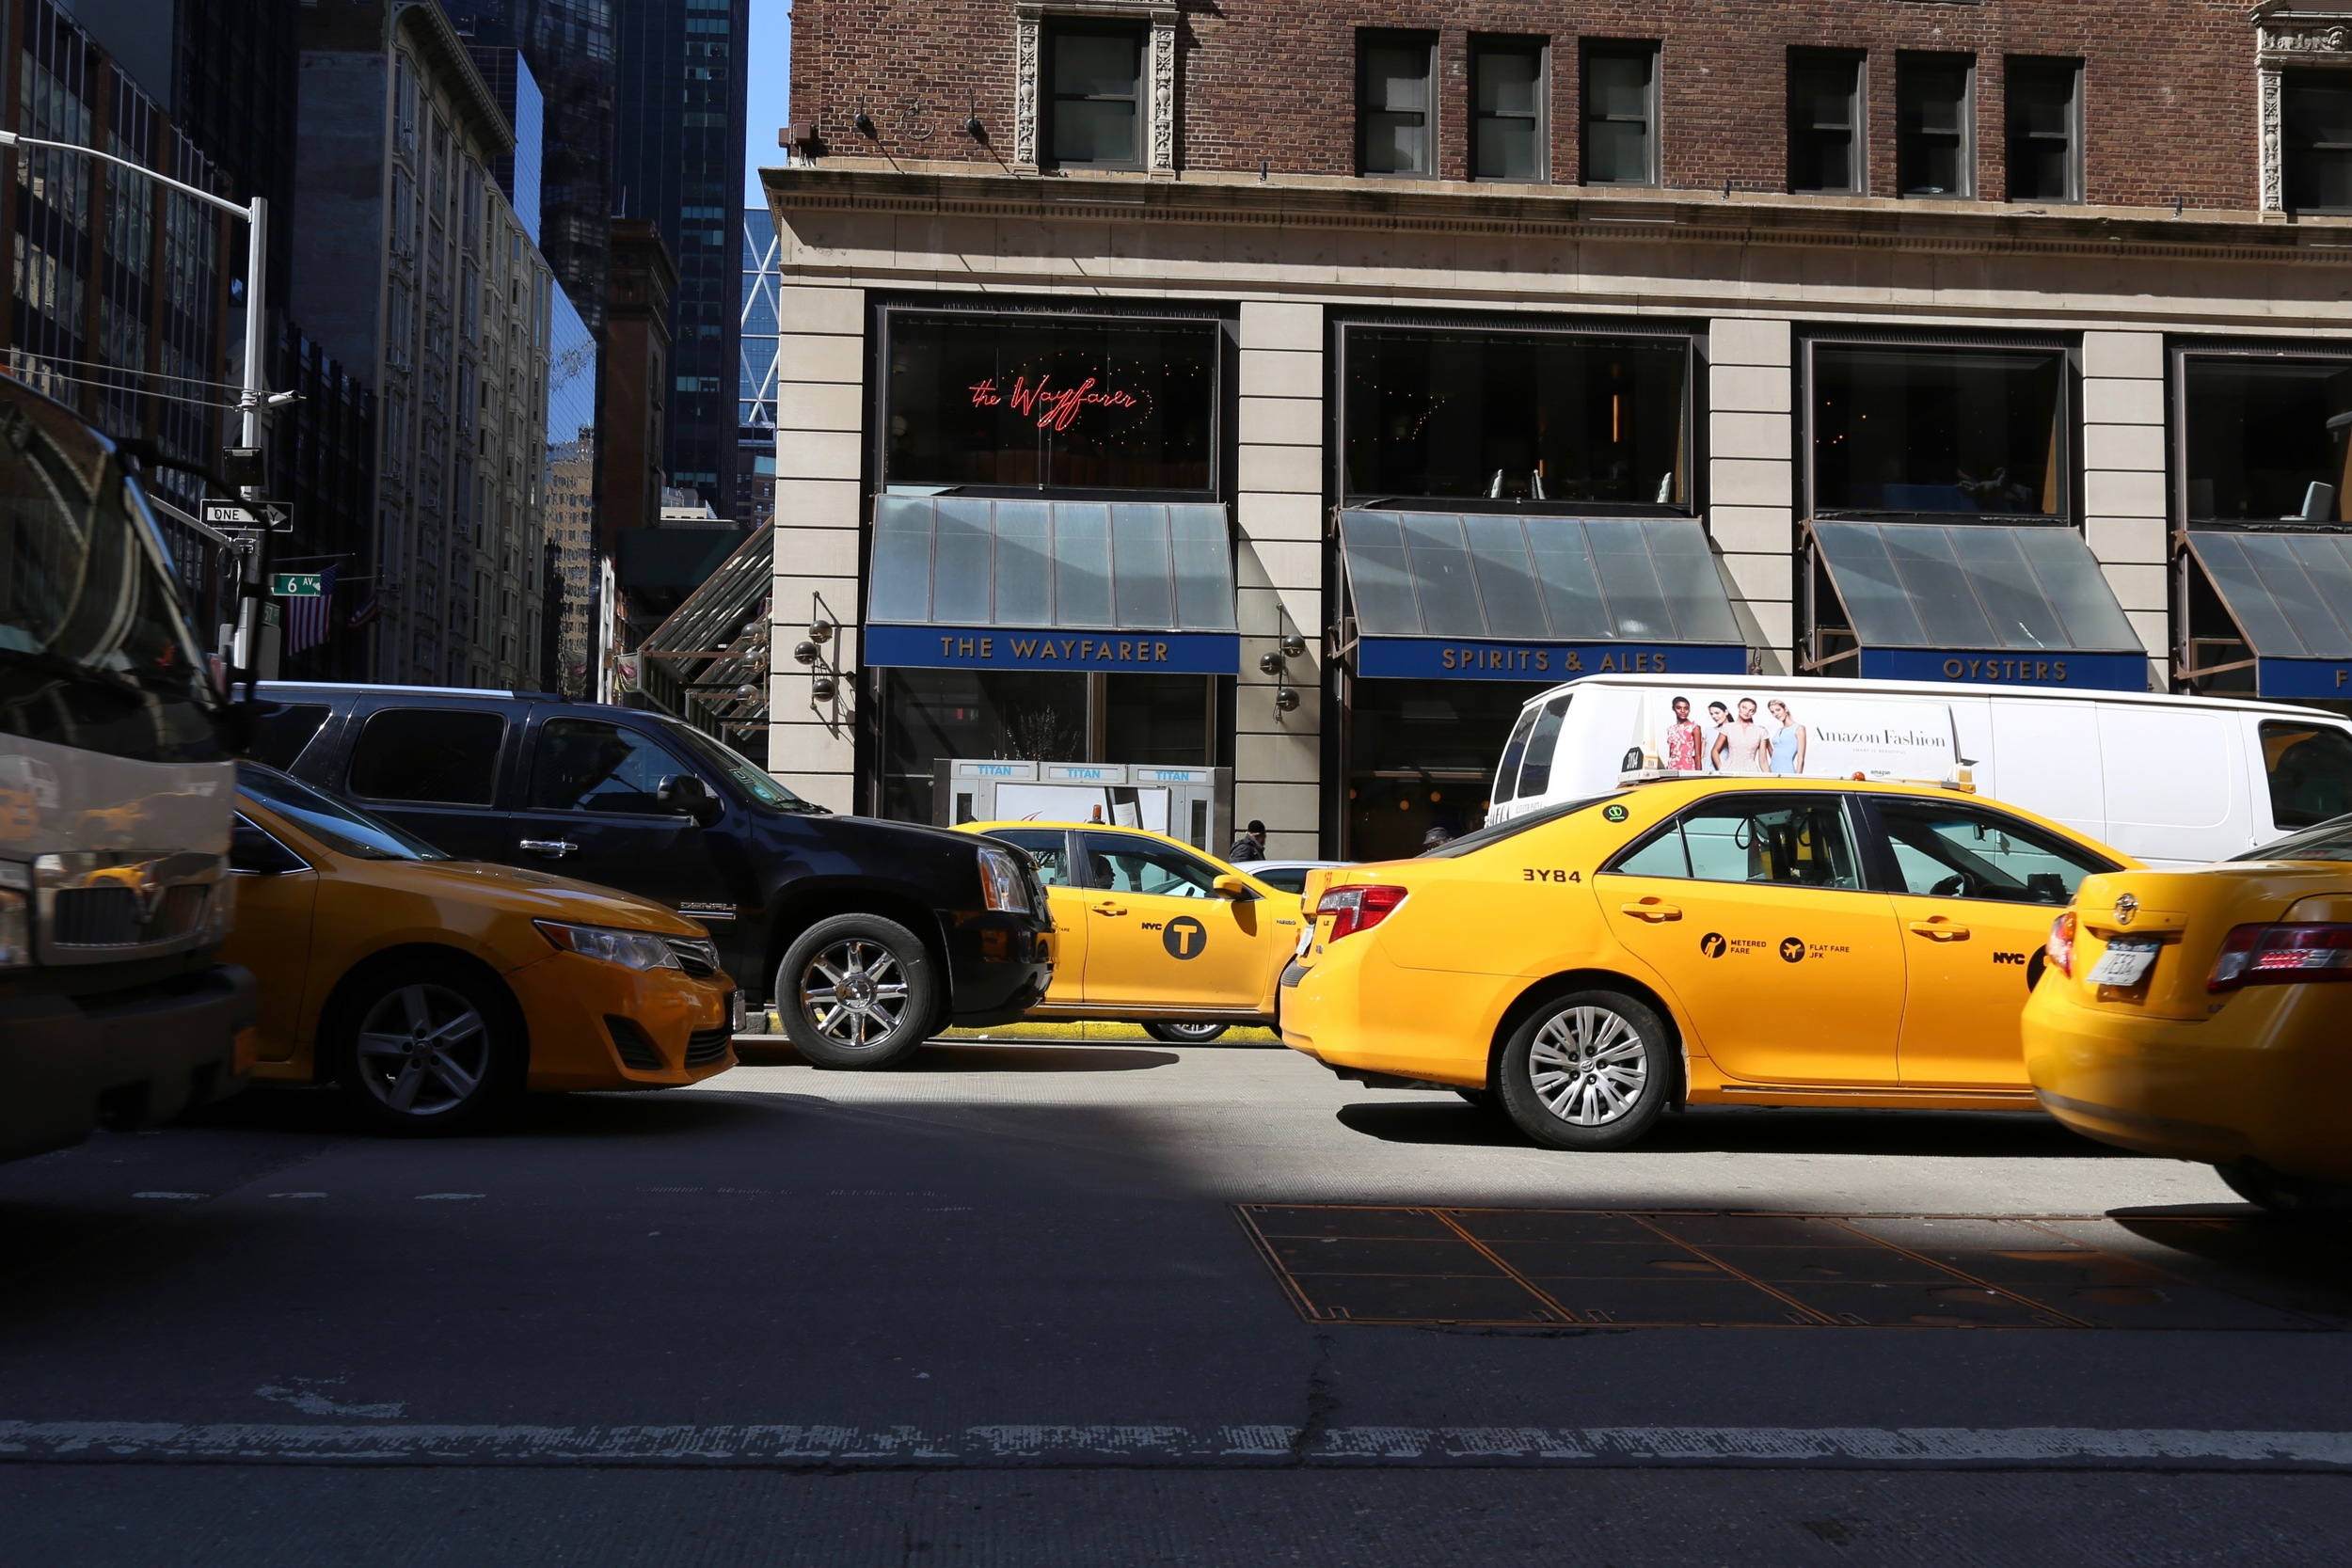 street view of the wayfarer with taxis outside